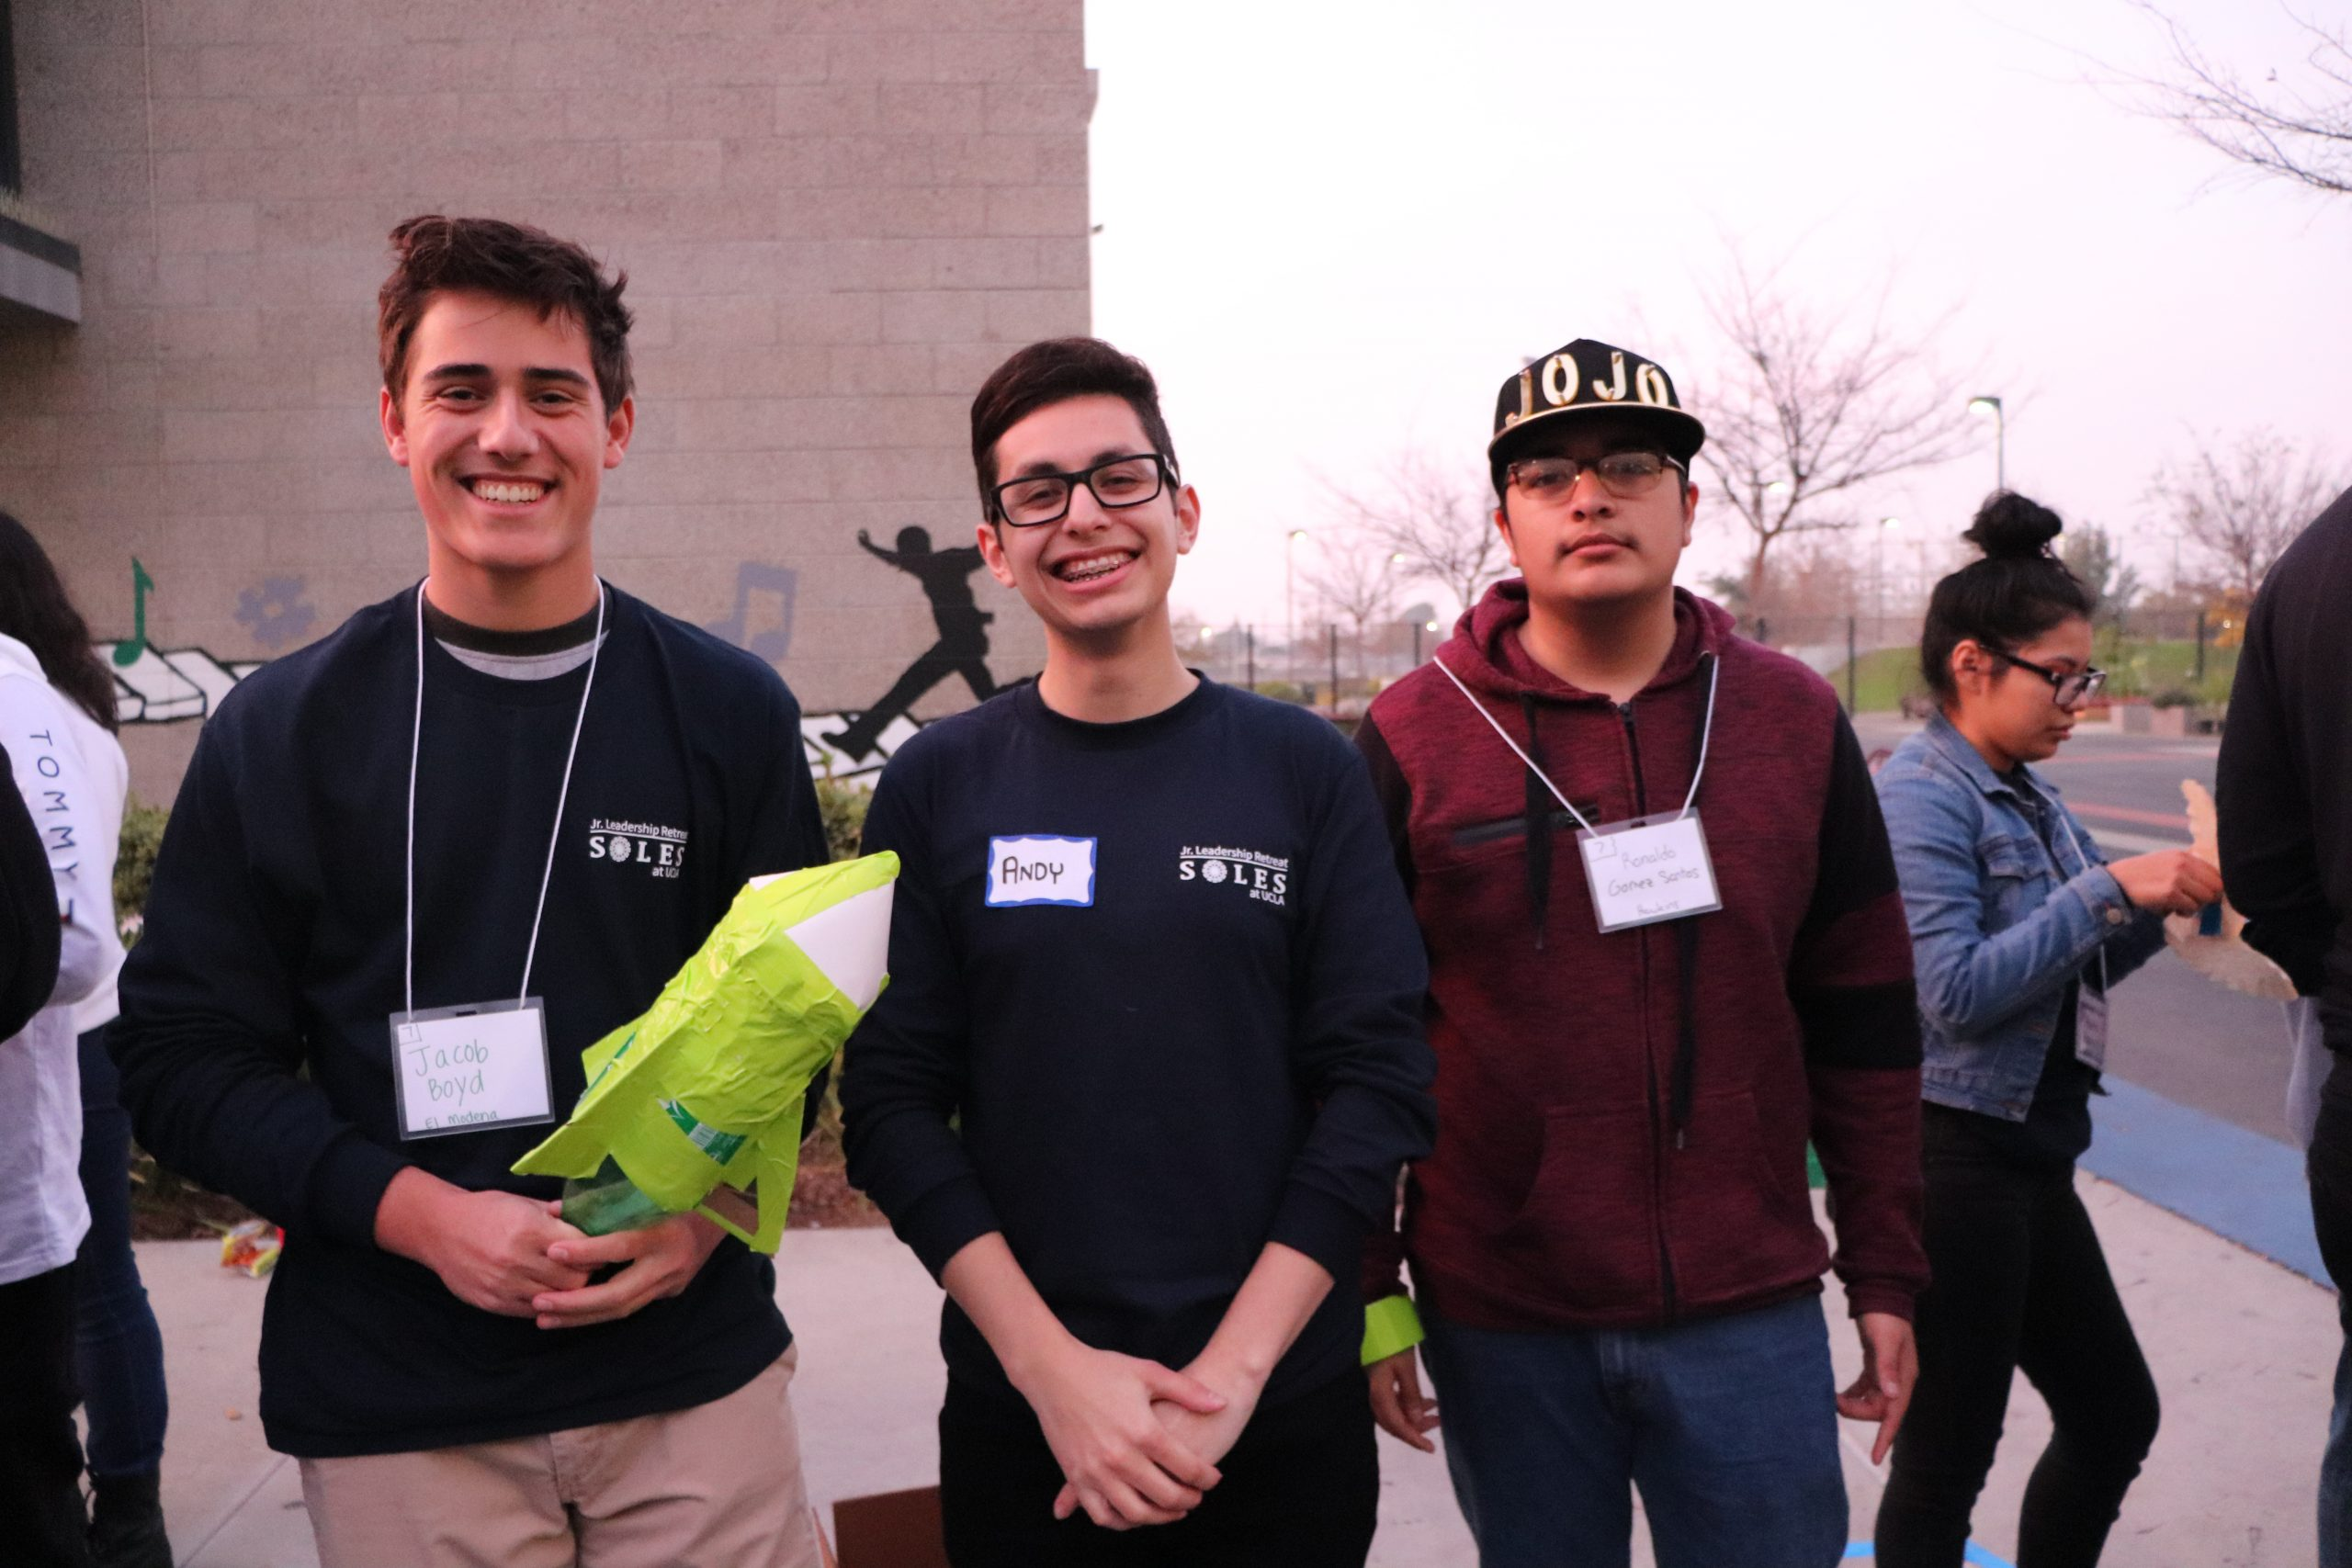 SOLES member Andy Muratalla poses with SHPE Jr. chapter members during Leadershpe Junior event.